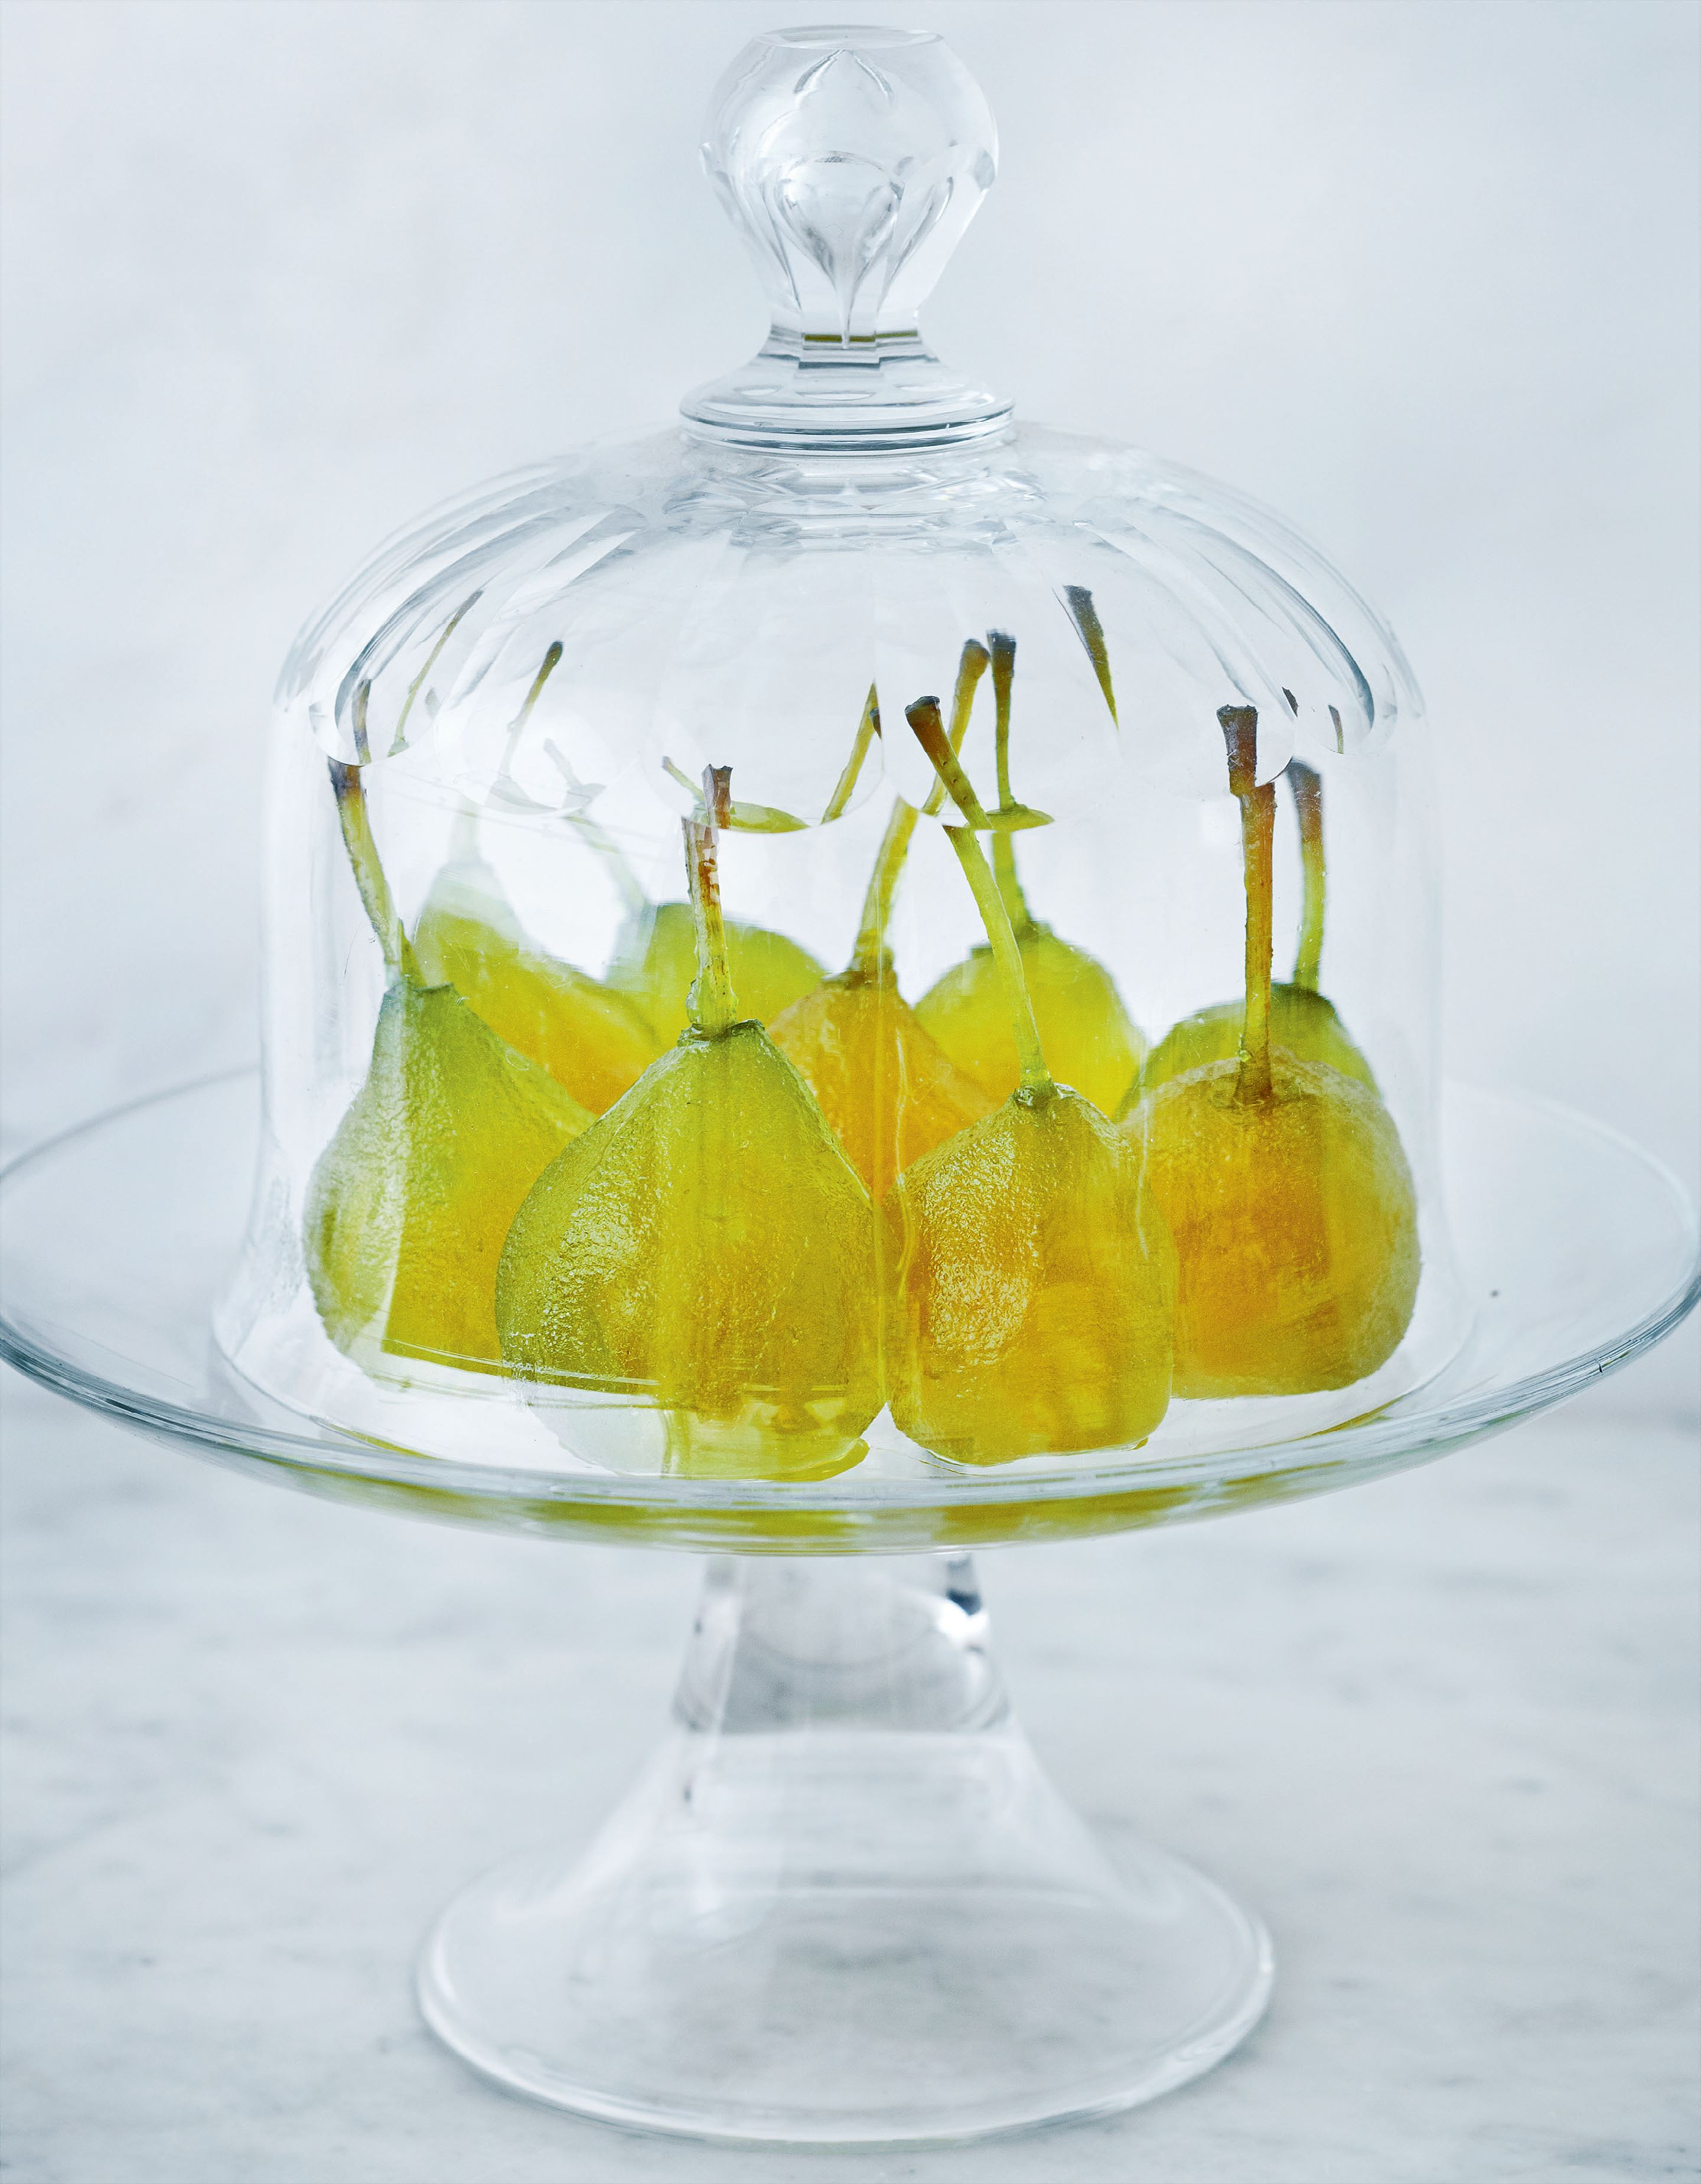 Candied Pears